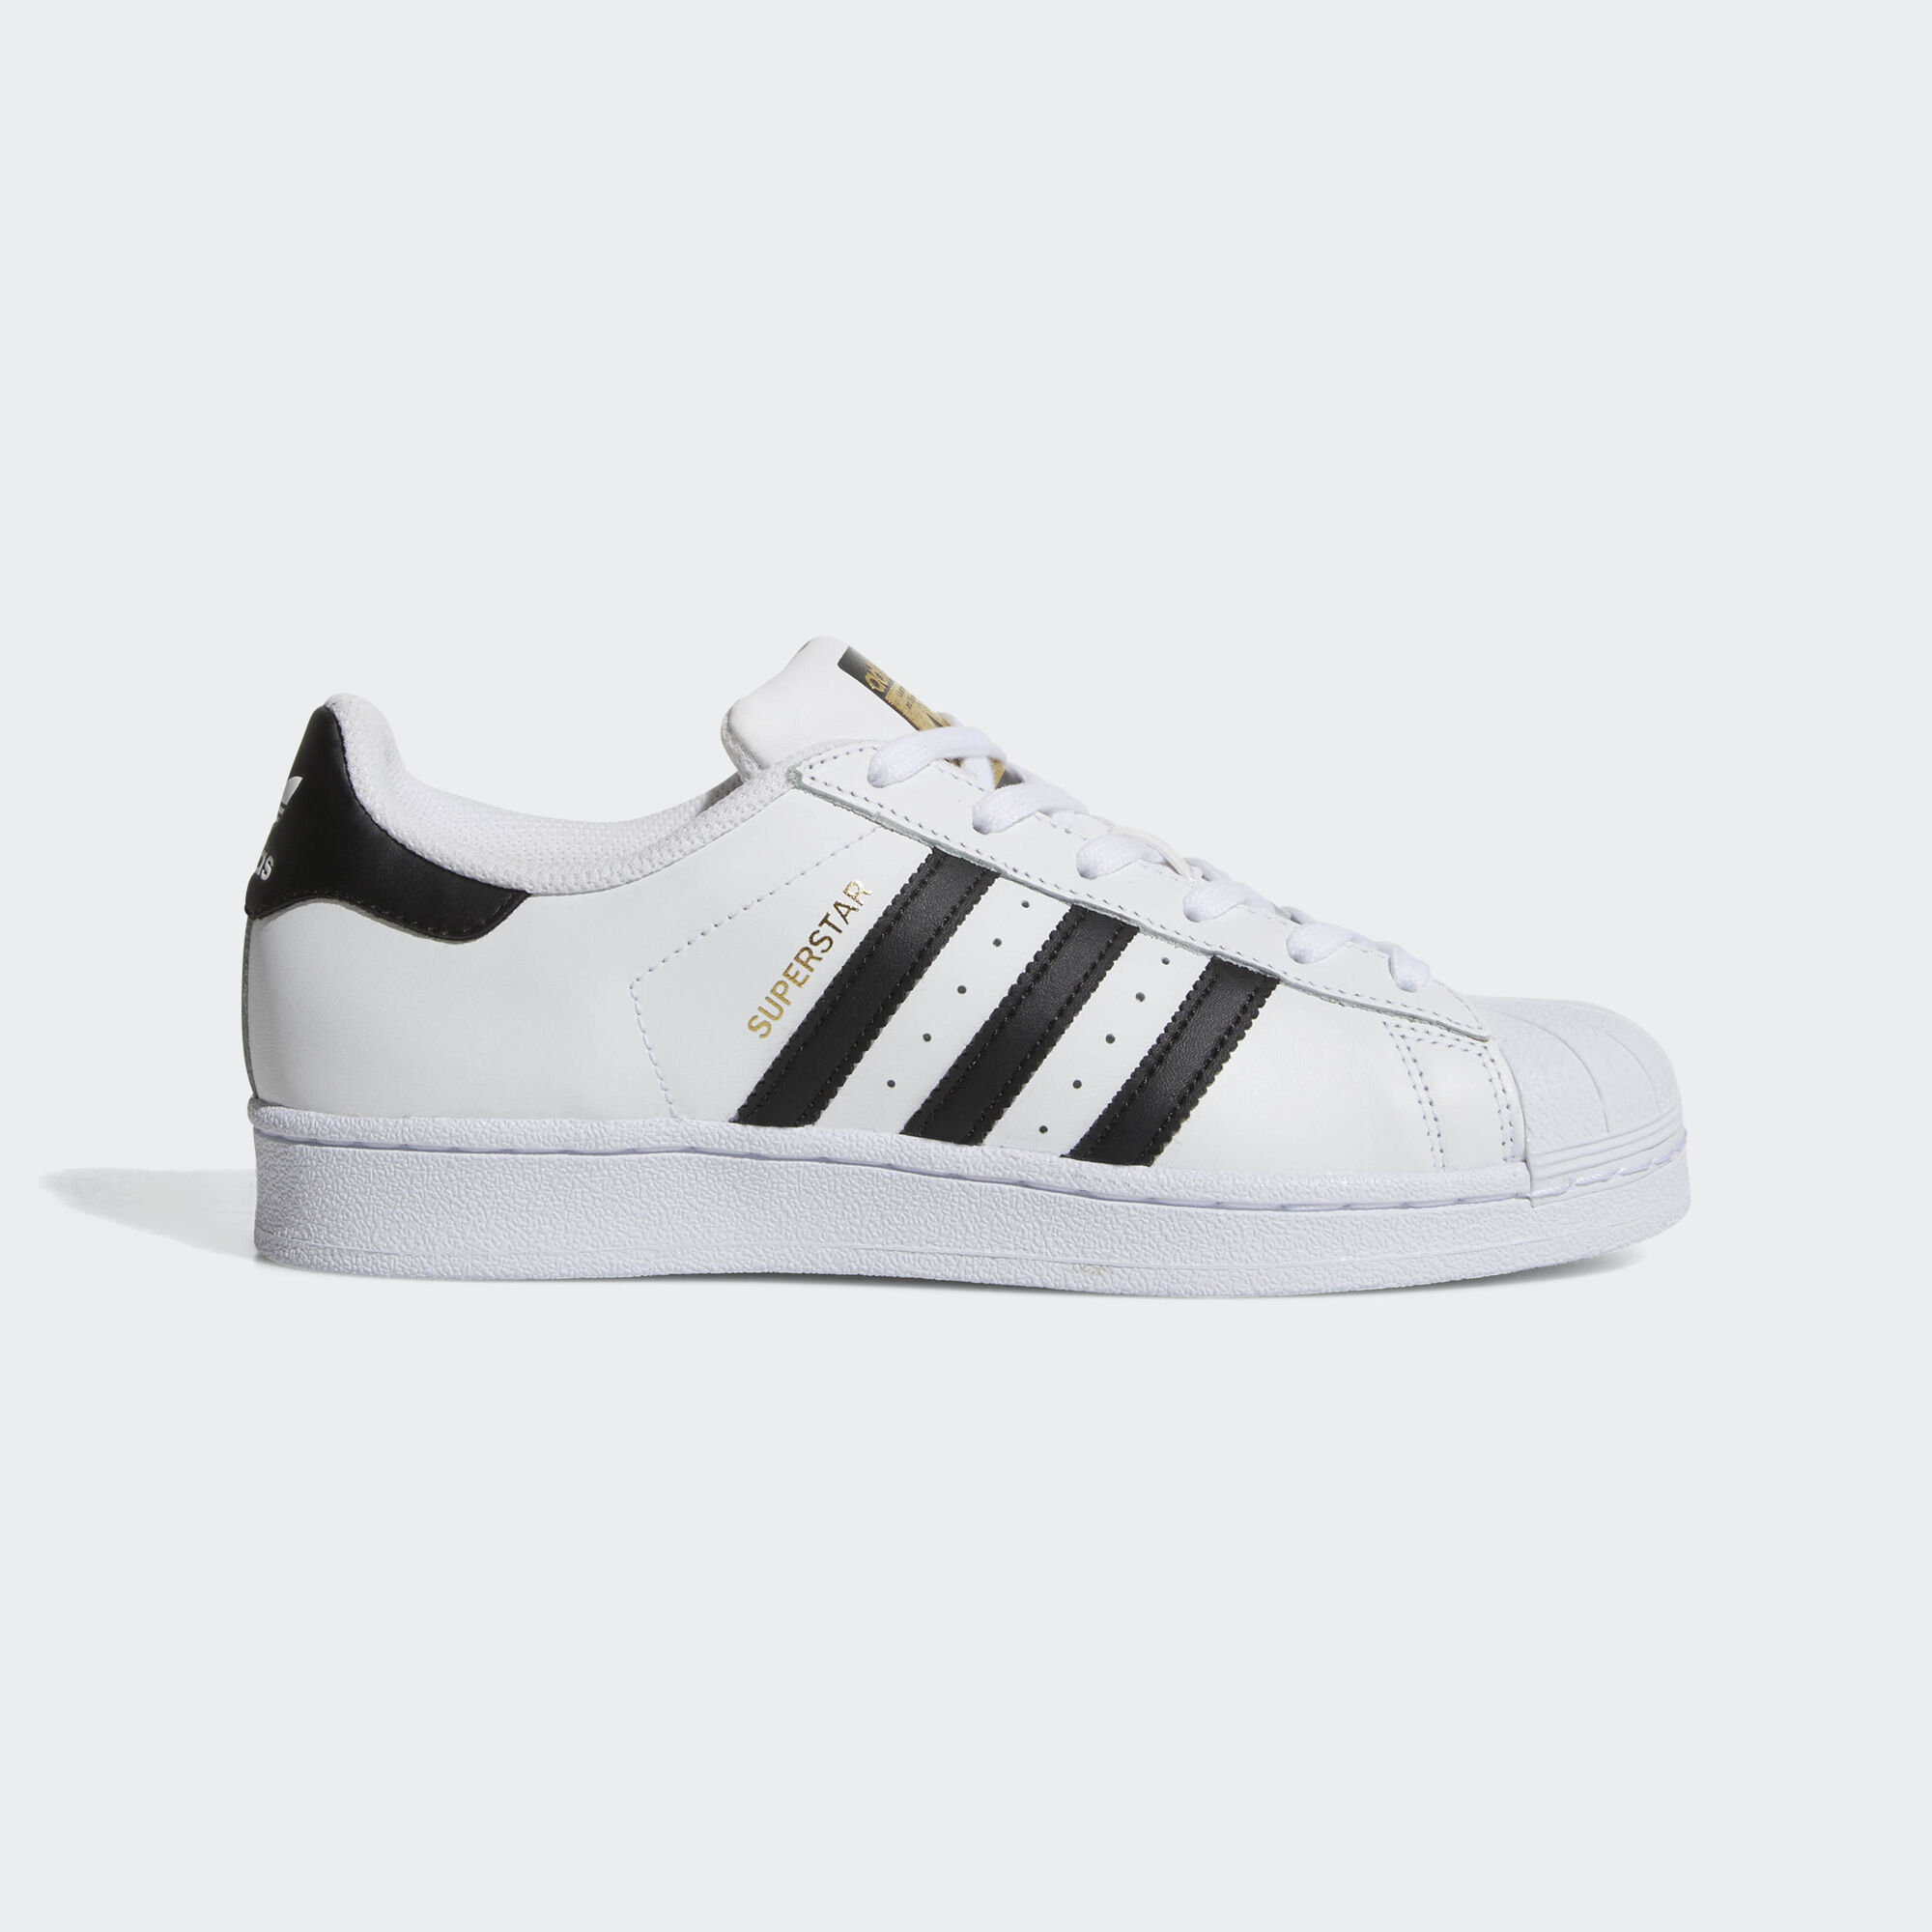 9d72ac86965f ... discount code for adidas neo leather gold red adidas womens superstar  shoes white core black c77153